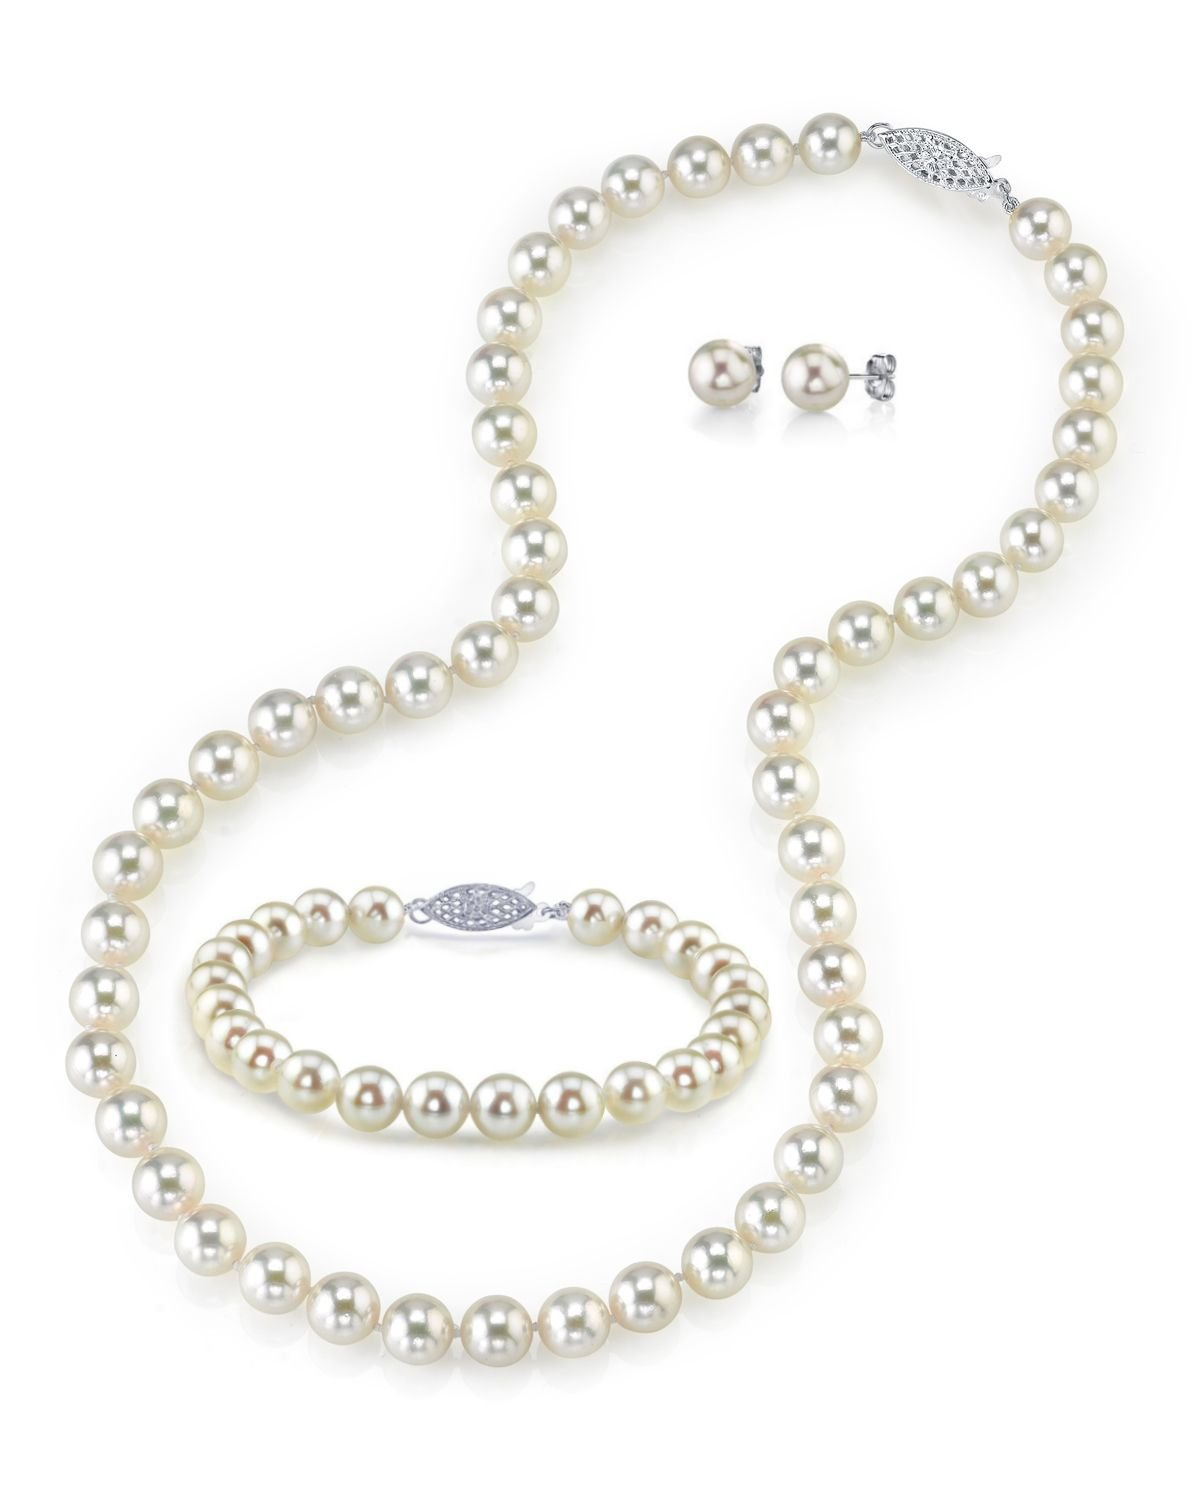 14K Gold 6.0-6.5mm White Akoya Cultured Pearl Necklace, Bracelet & Earrings Set, 18'' - AAA Quality by The Pearl Source